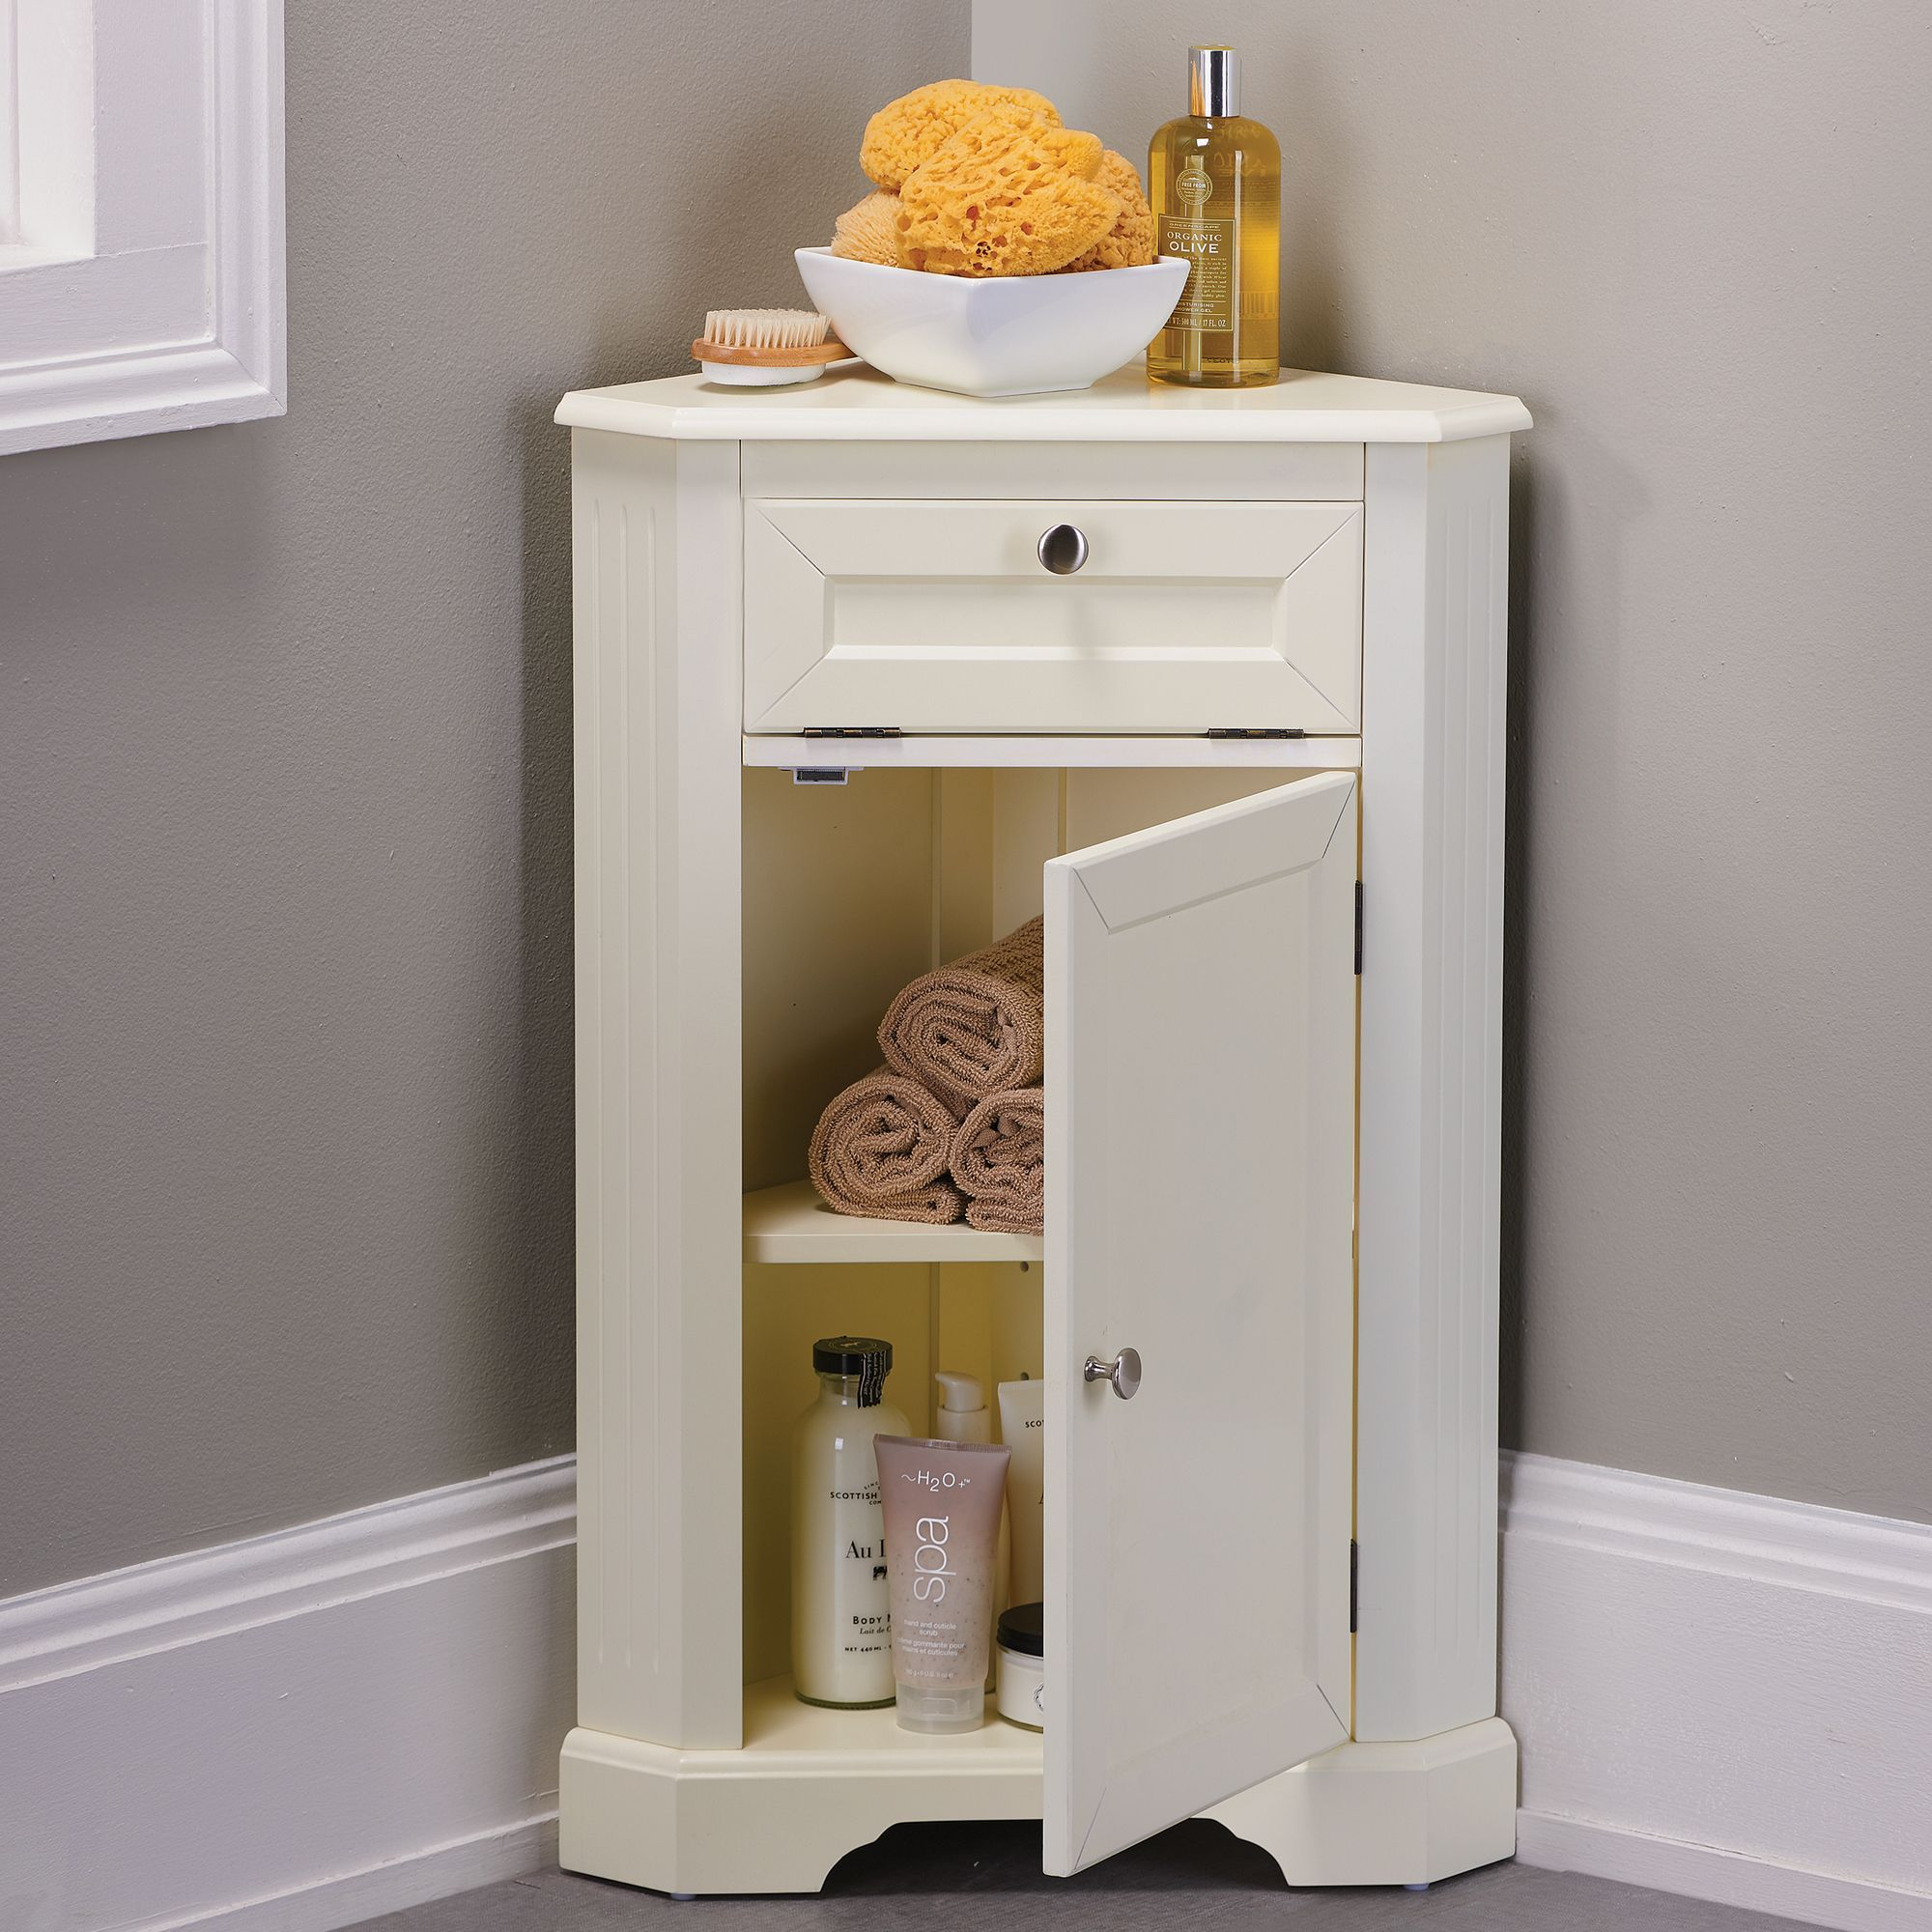 Maximize Storage Space In Small Bathrooms With Our Weatherby Corner Storage Cabi Bathroom Corner Storage Cabinet Bathroom Floor Cabinets Corner Storage Cabinet